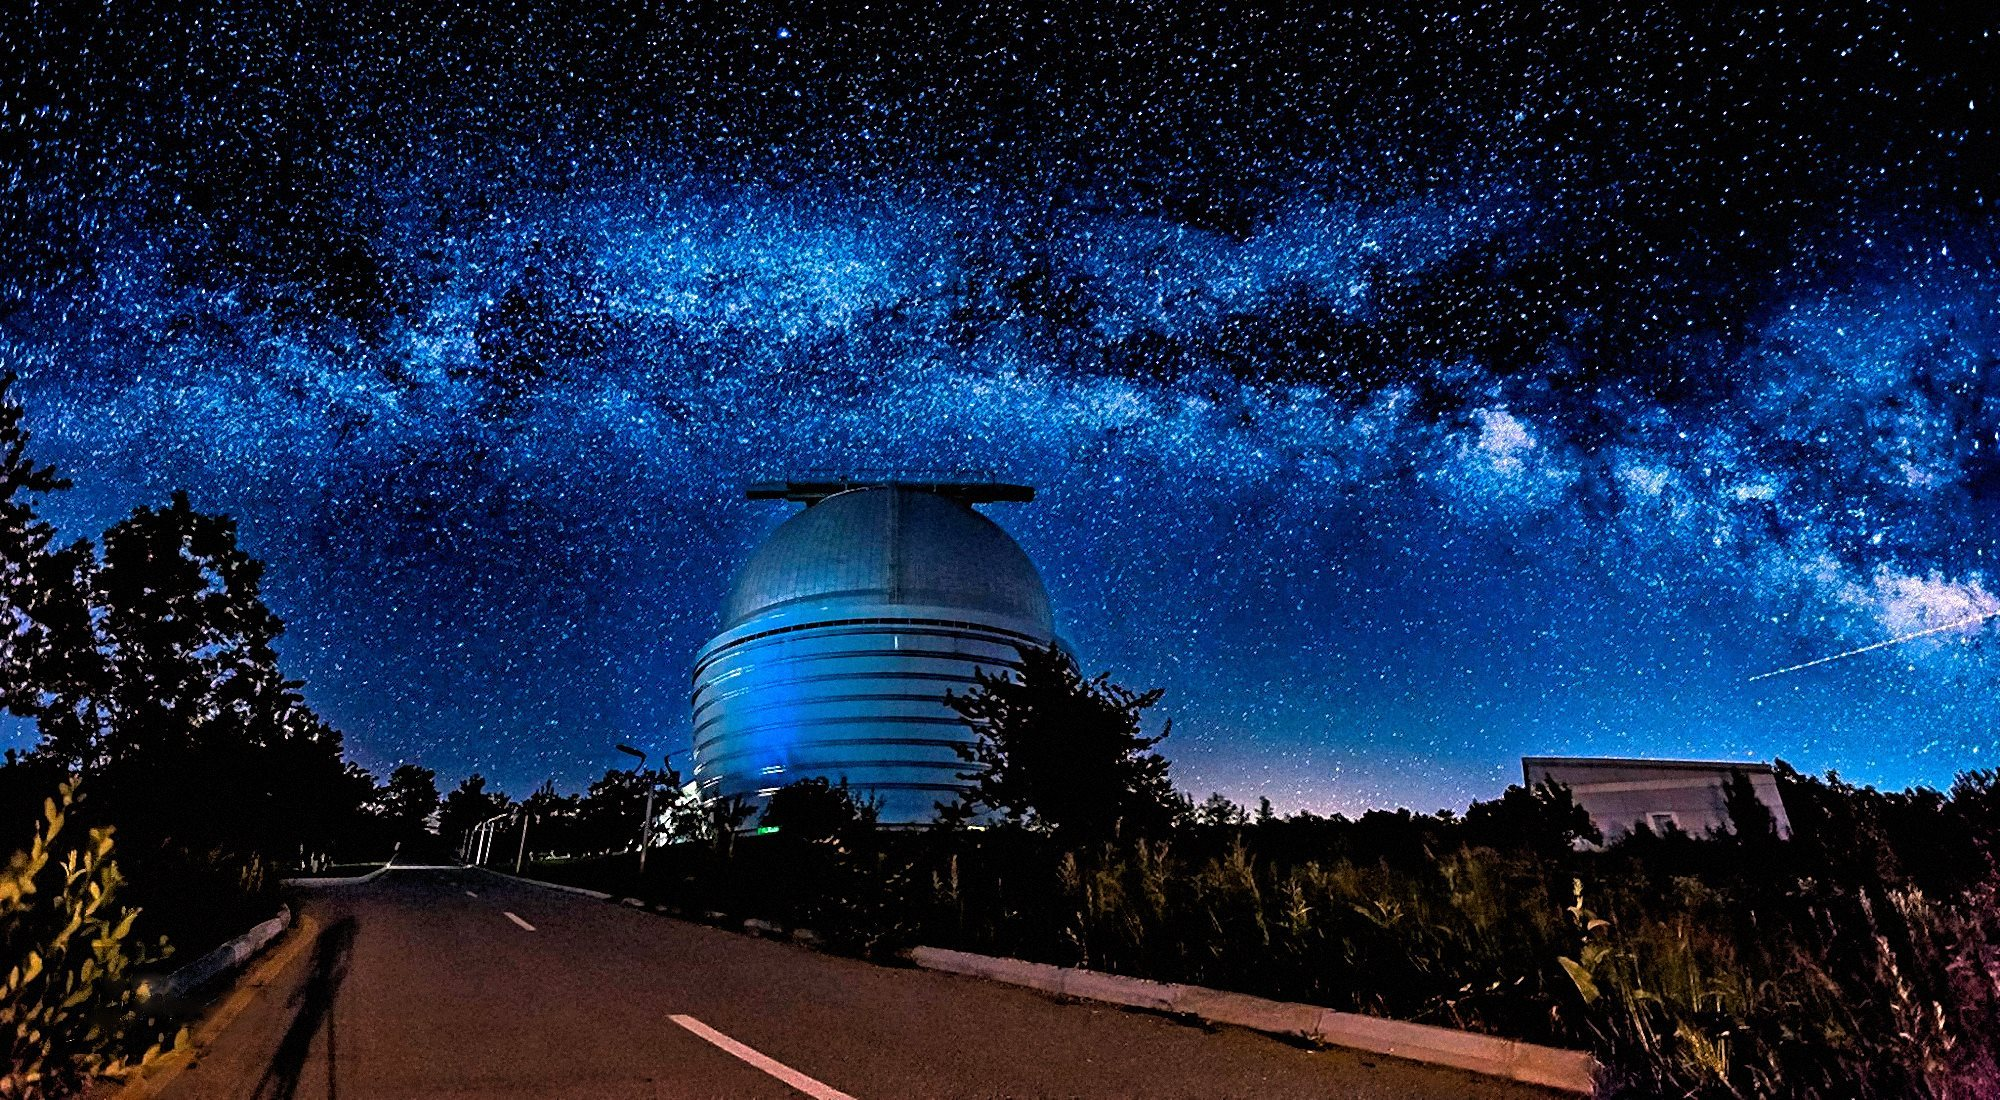 00-faik-nagiyev-the-milky-way-over-nasreddin-tusi-shamakhi-astrophysical-observatory-shao-in-azerbaijan-2016-1